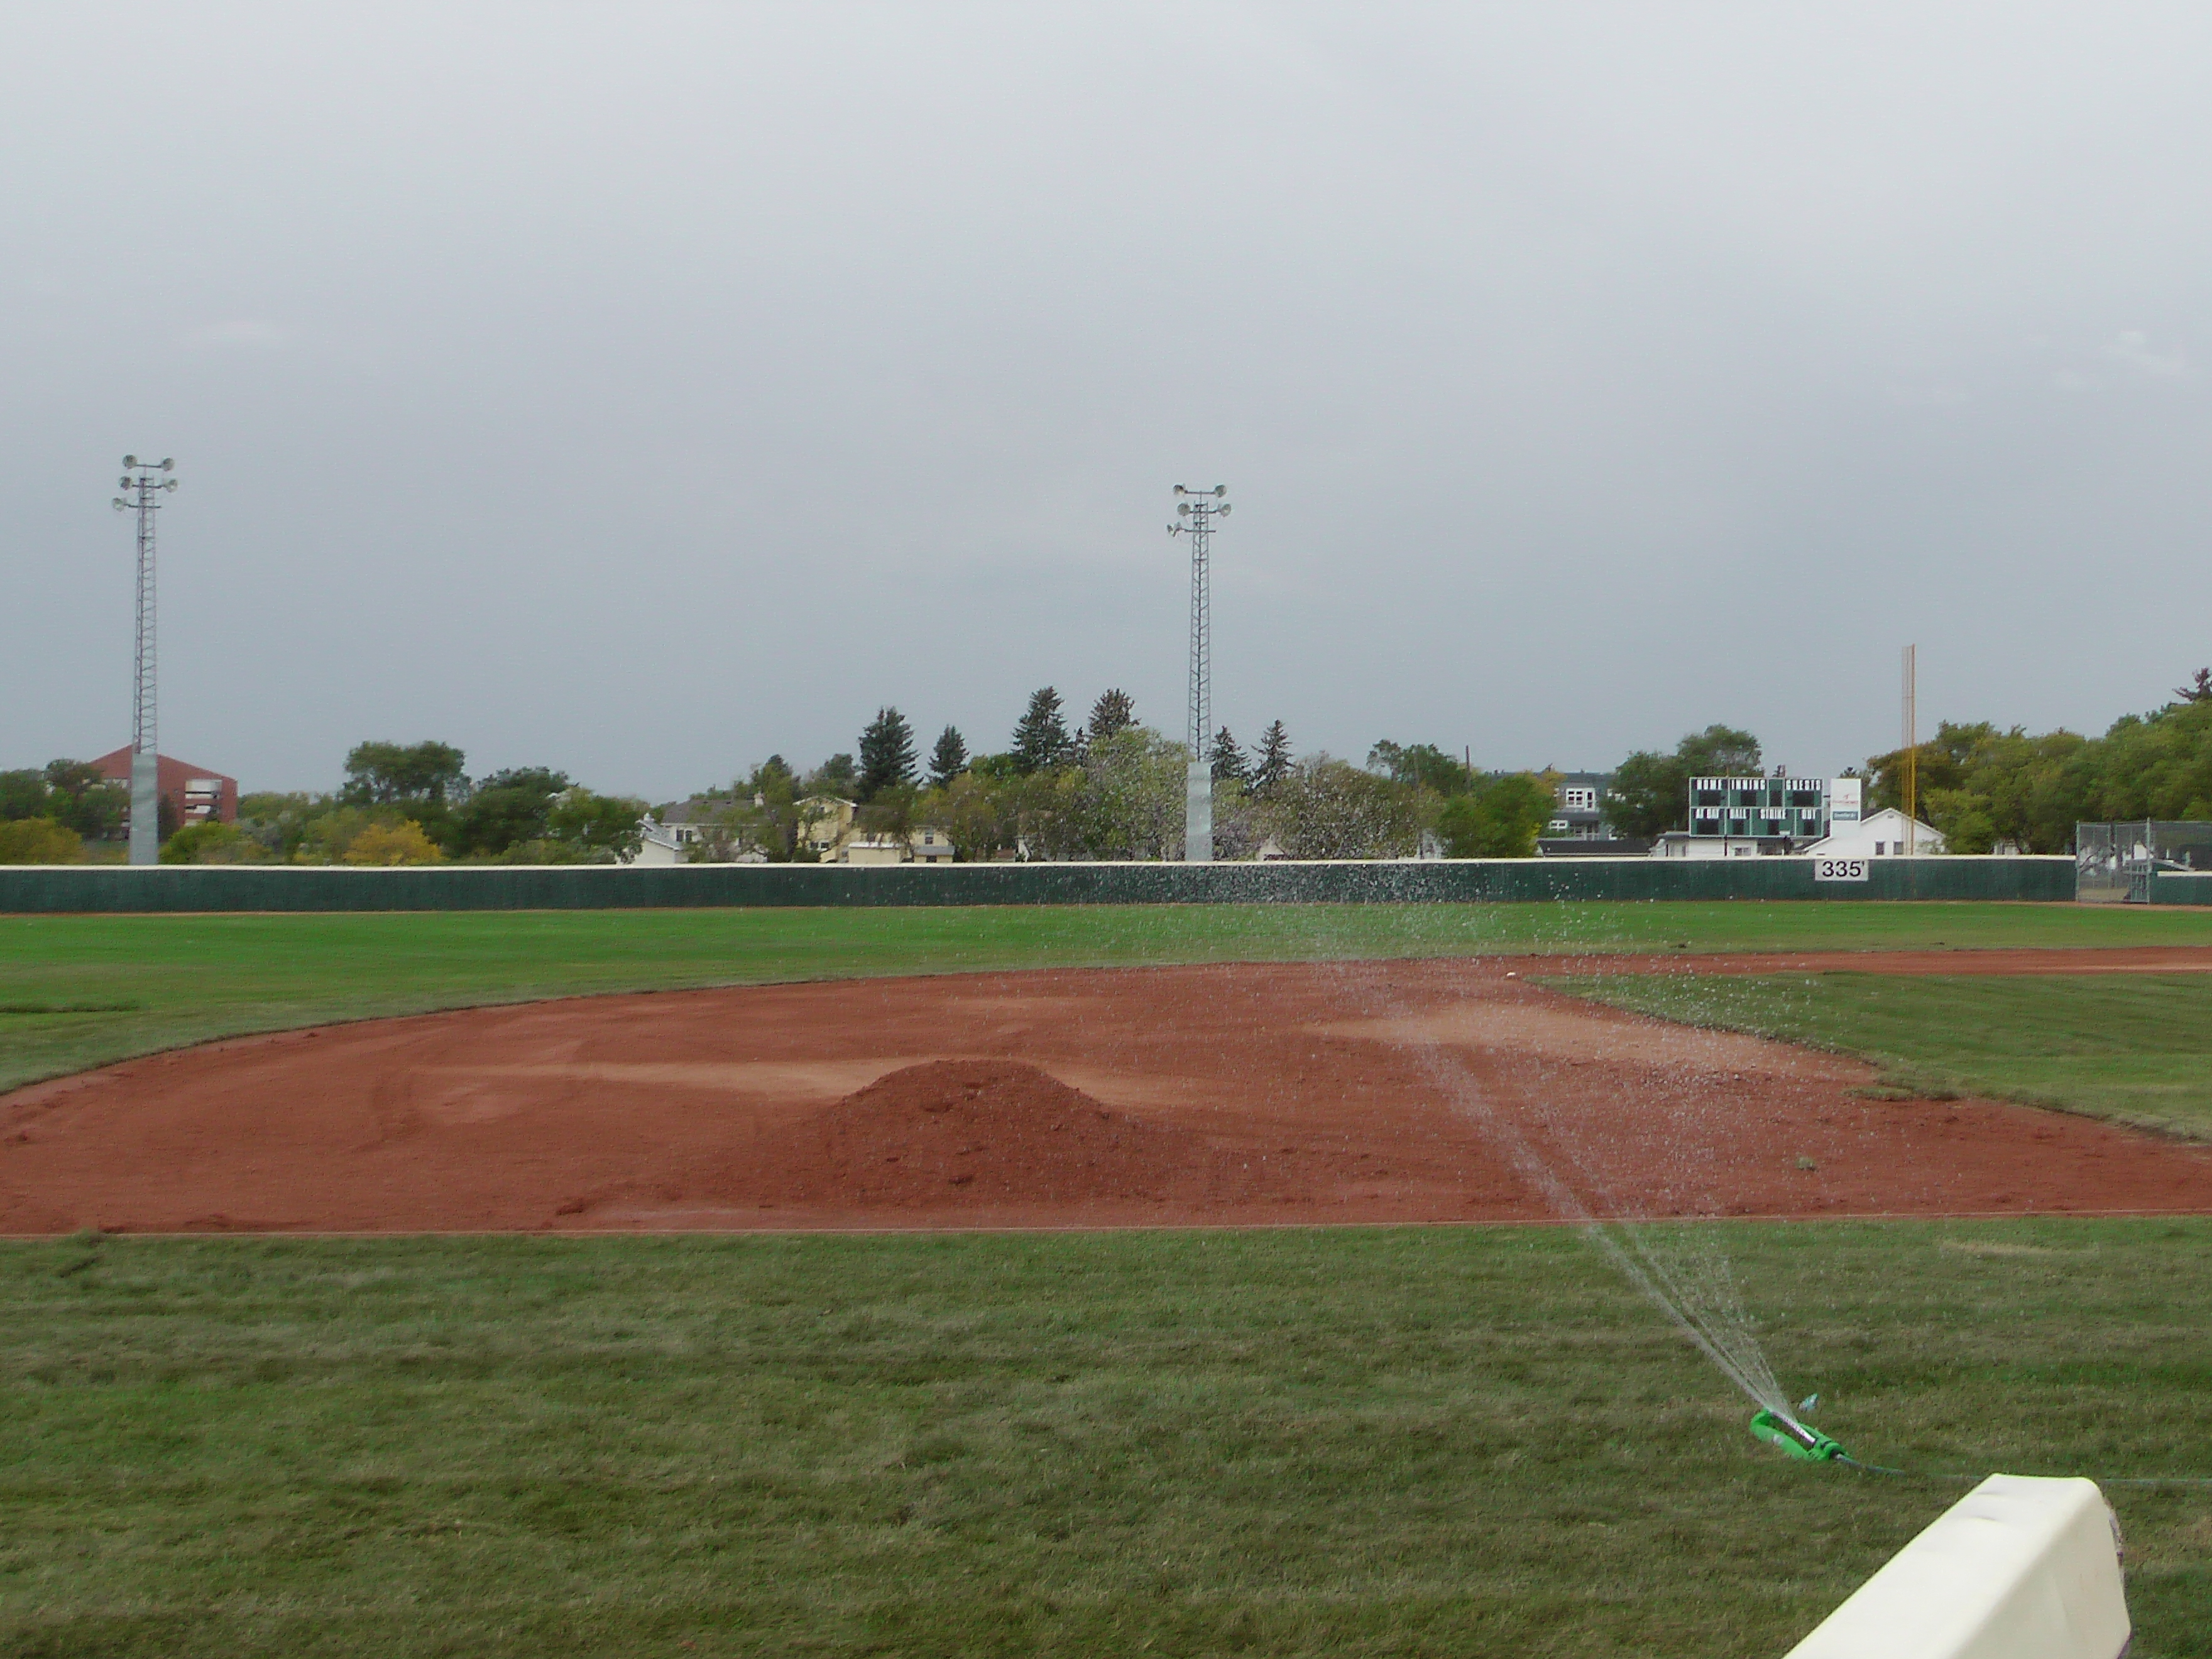 Sept 7 & 8 2018, Optimist Park Field Renovations, sod down being watered - Image 25